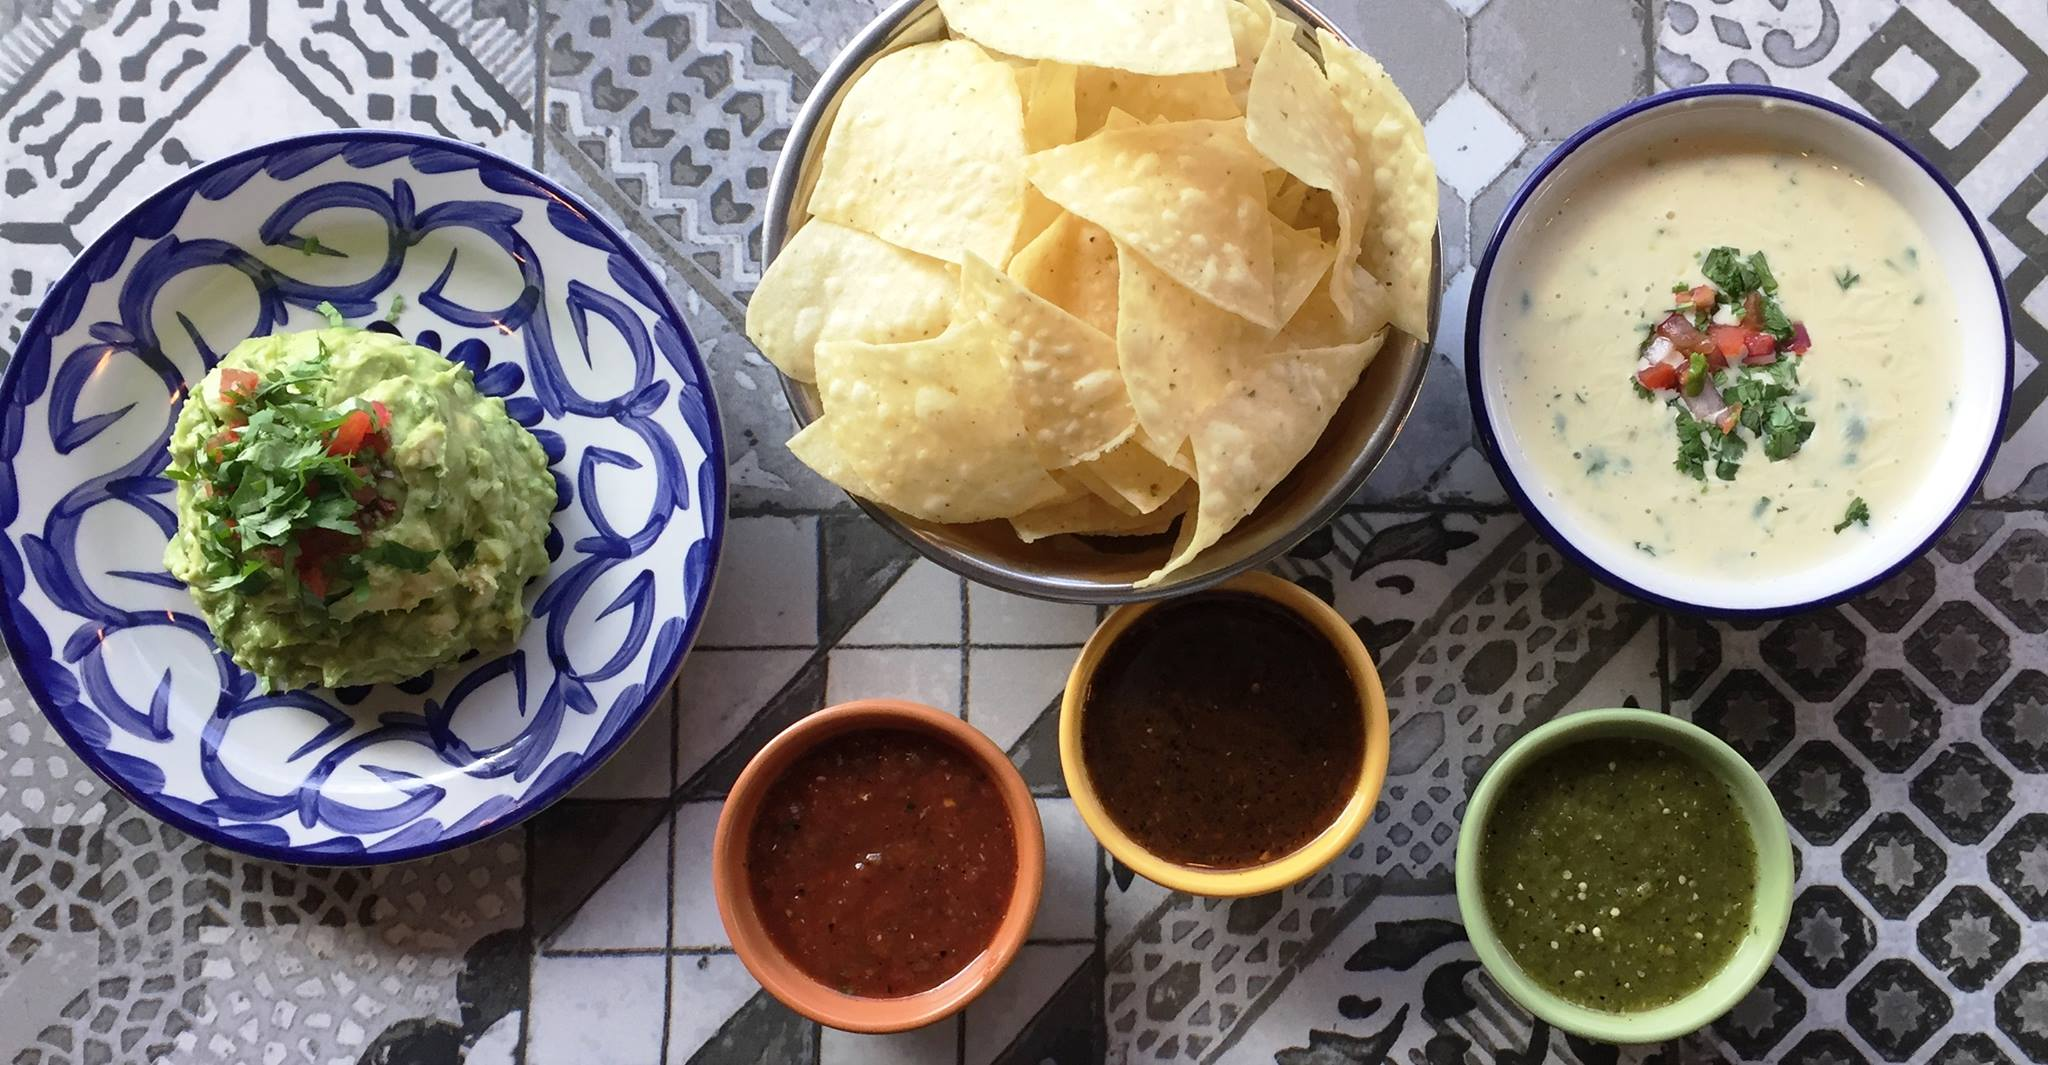 STARTERS - OUR FAMOUS QUESO AND CHIPS $4.99GUACAMOLE AND CHIPS $4.99CHIPS & ROASTED JALAPENO SALSA$2.69